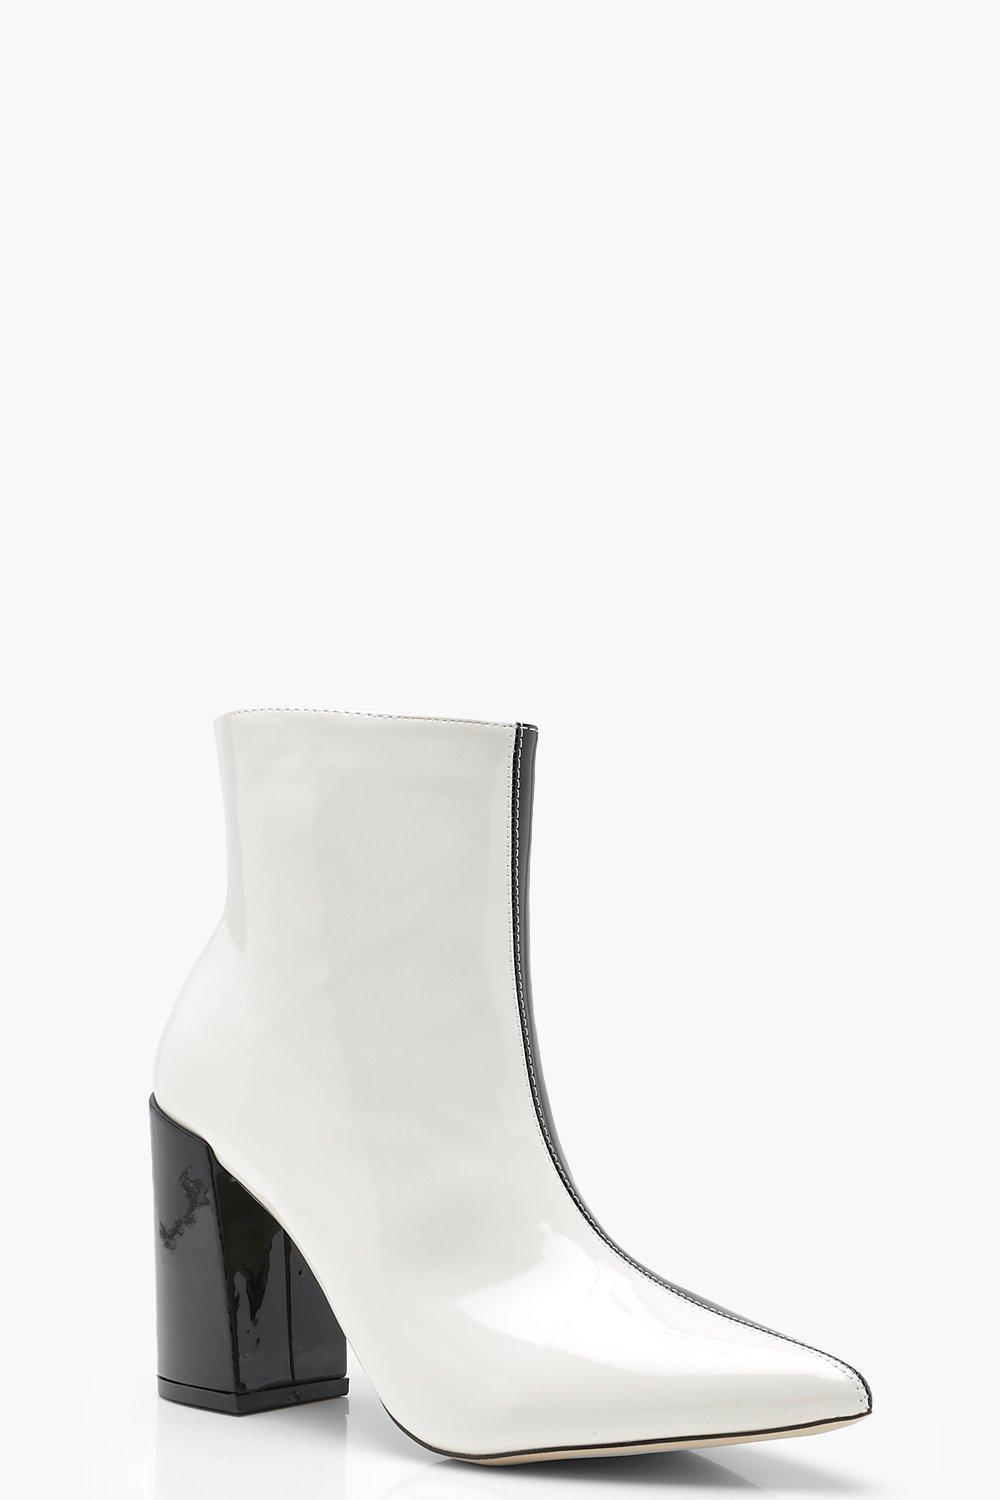 b335677710 Boohoo Contrast Block Heel Ankle Boots in White - Lyst